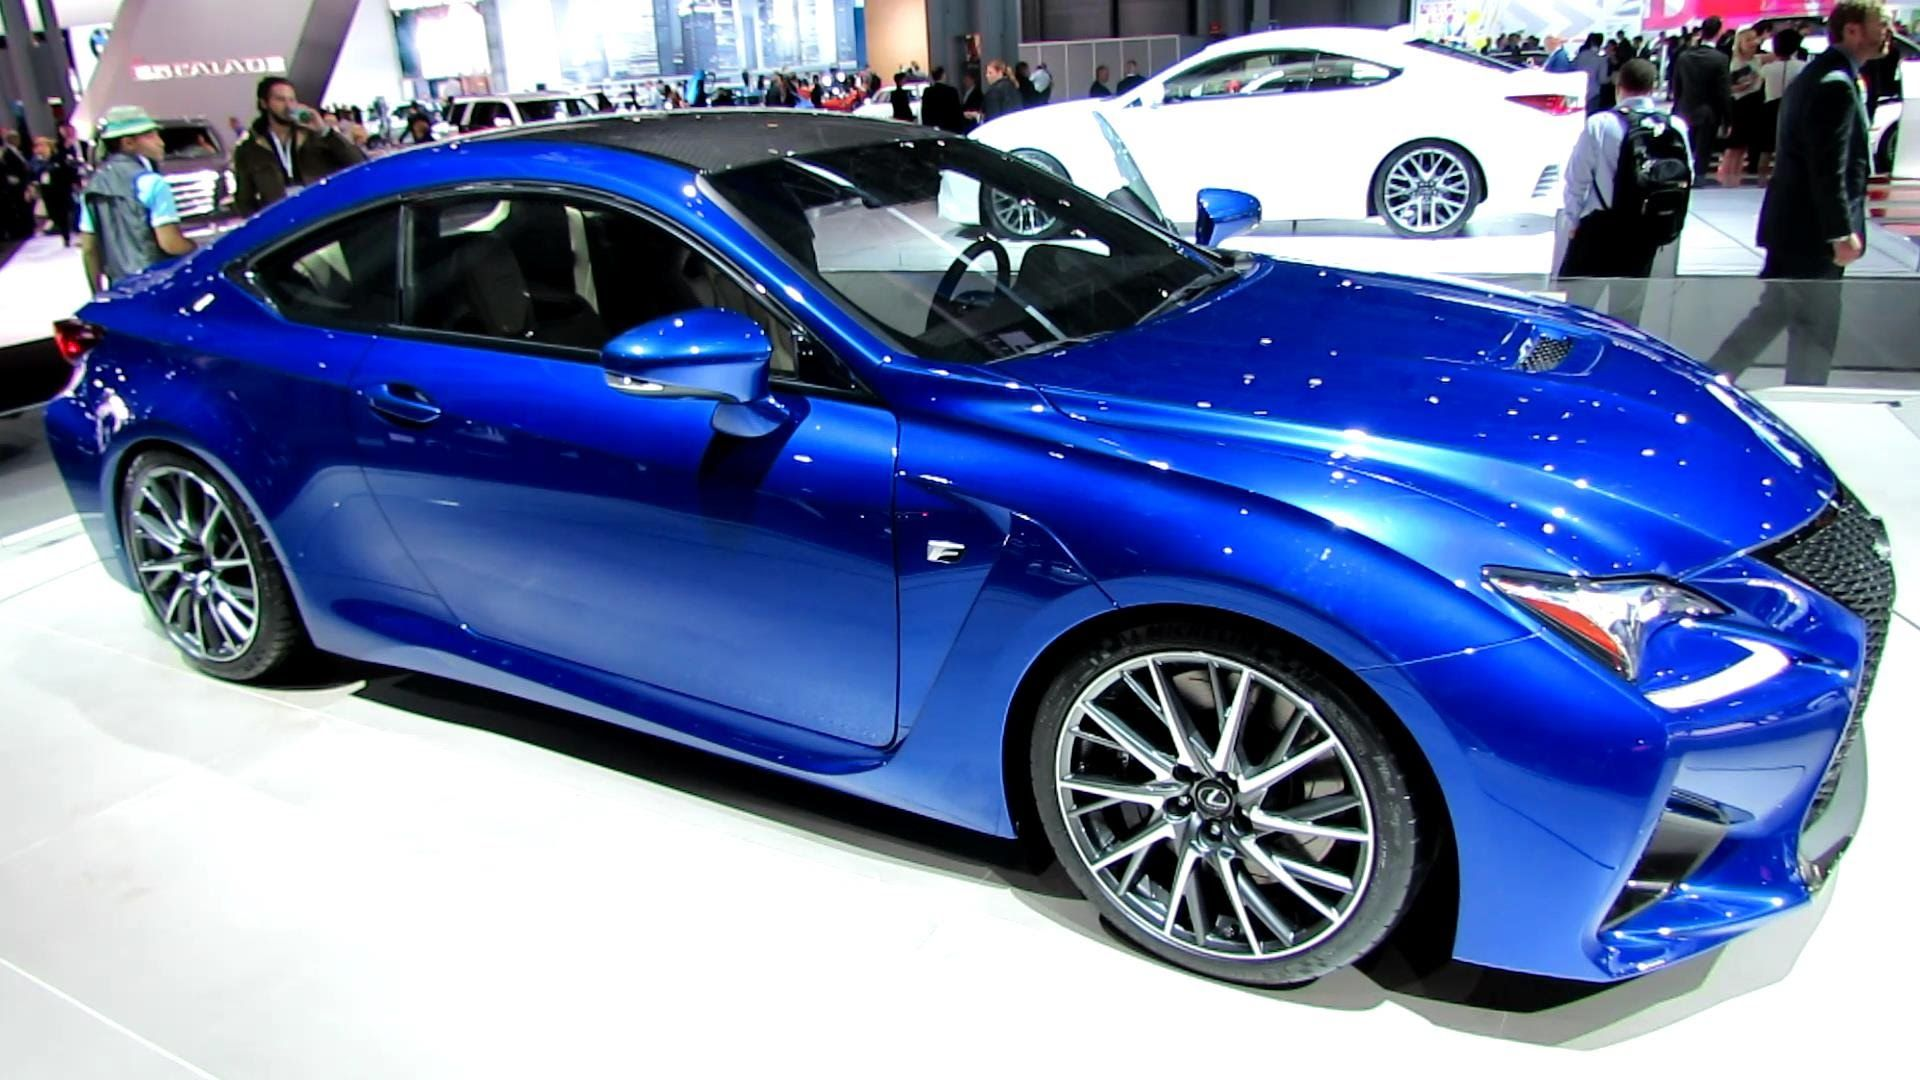 2015 Lexus RC F Photos Wallpaper Pictures of sports cars